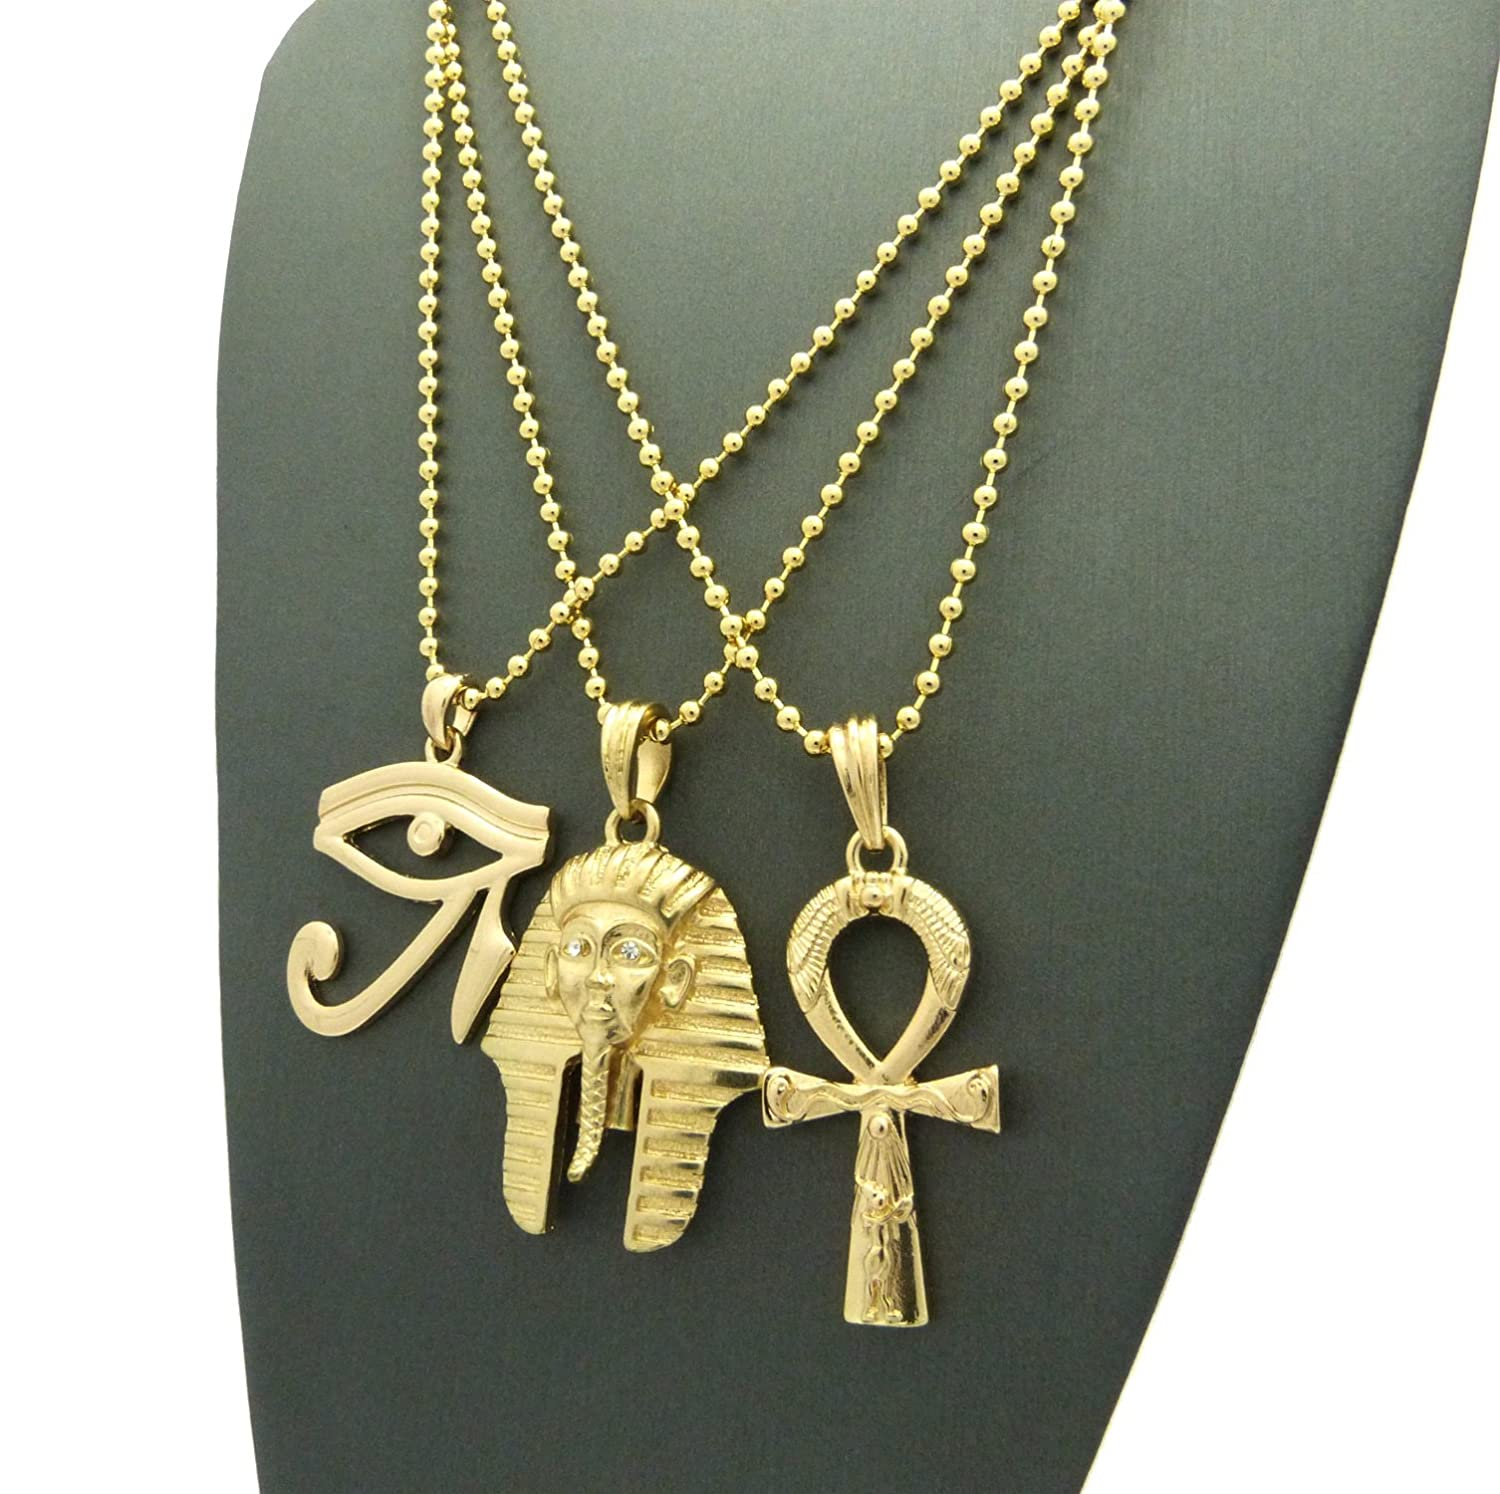 gold micro com hiphopcloset nefertiti chains head mmp chain silver